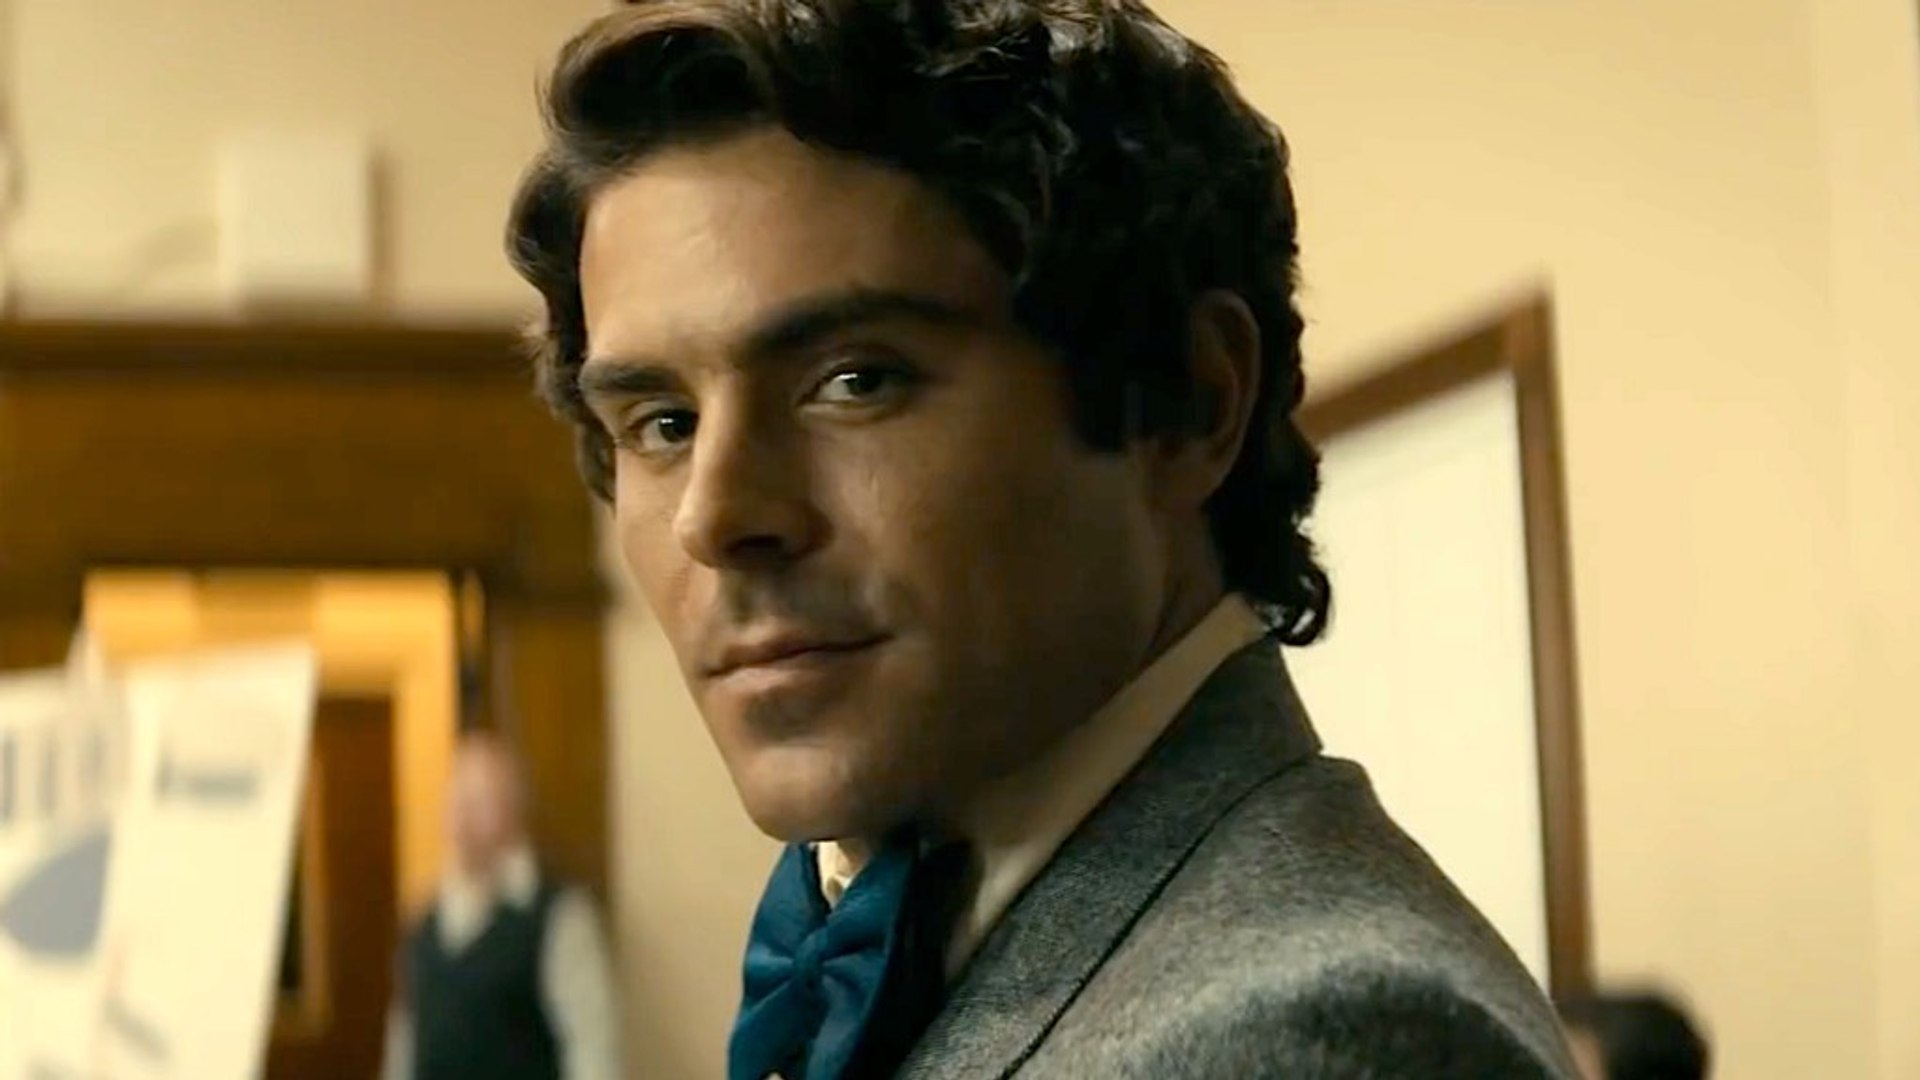 """Extremely Wicked, Shockingly Evil and Vile"": Zac Efron es un aterrador Ted Bundy en este nuevo clip de la película"